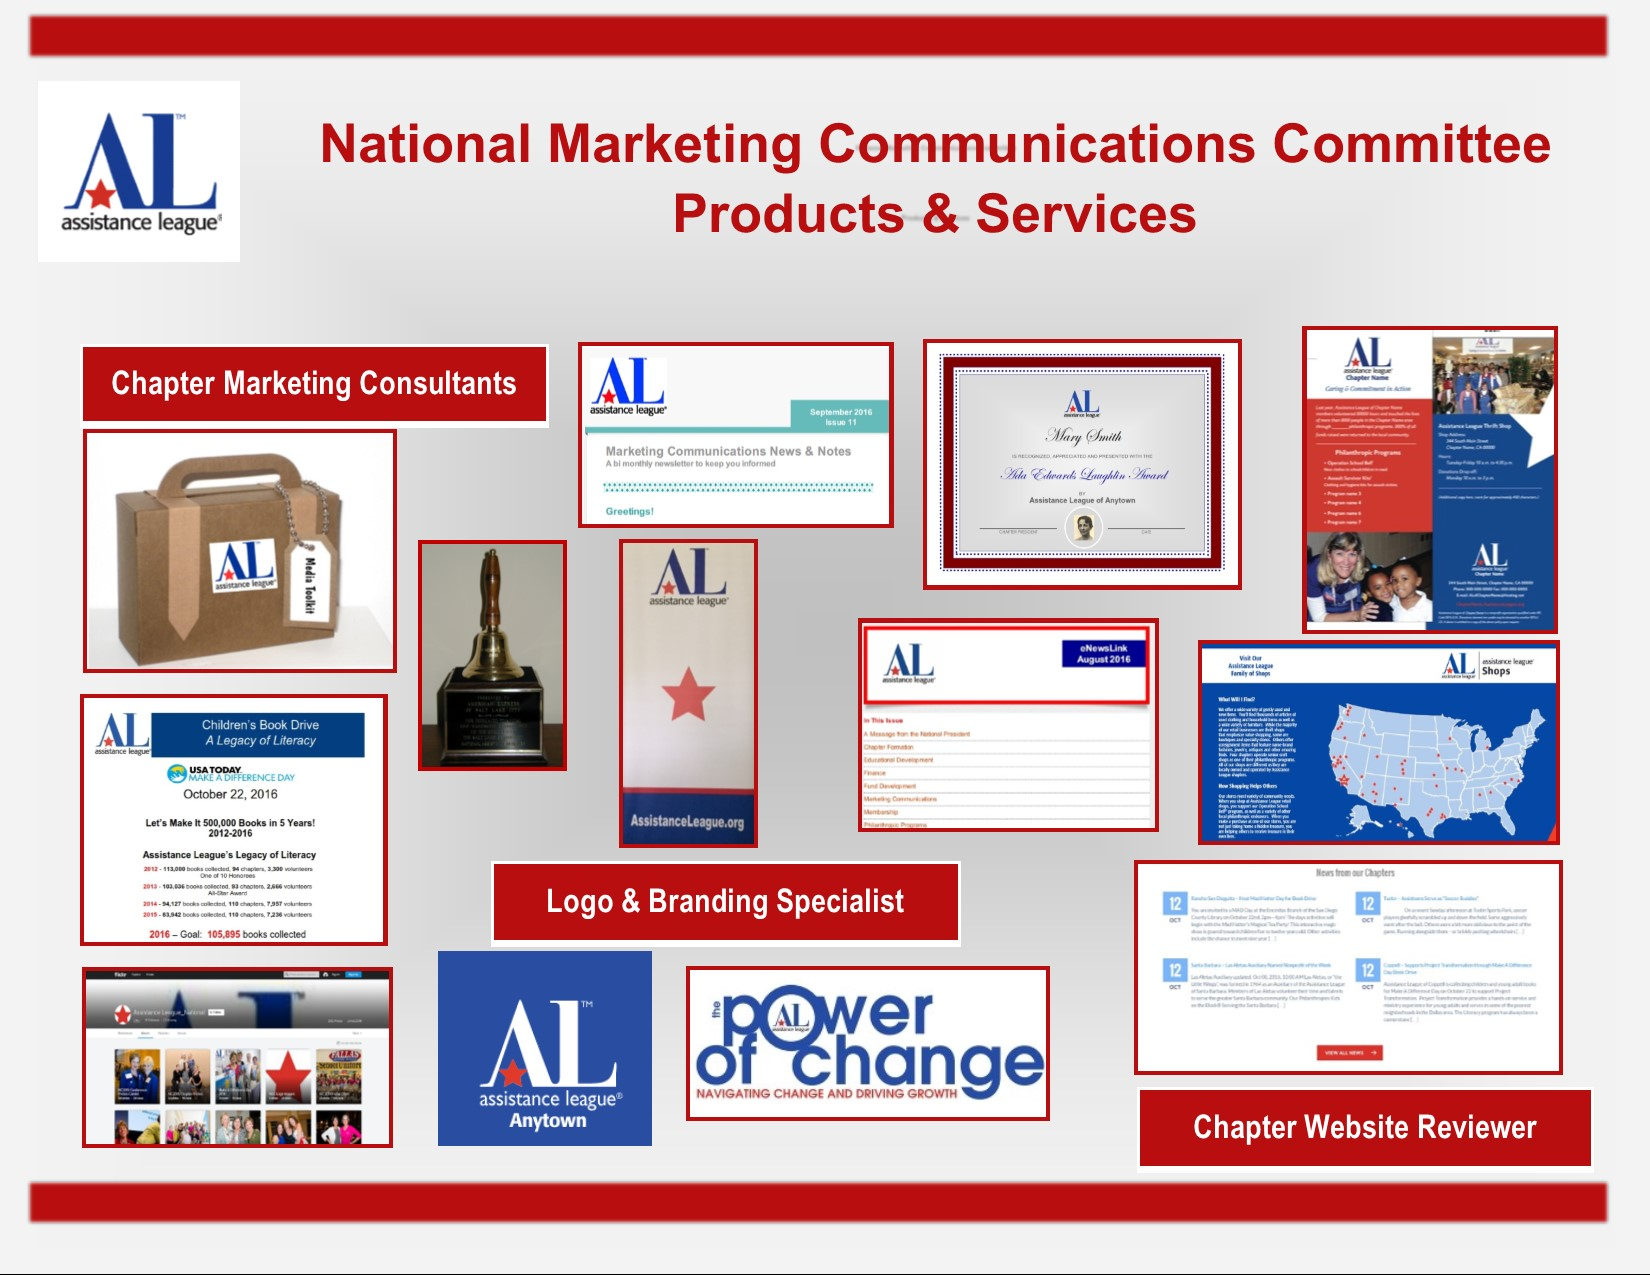 mcc-products-services